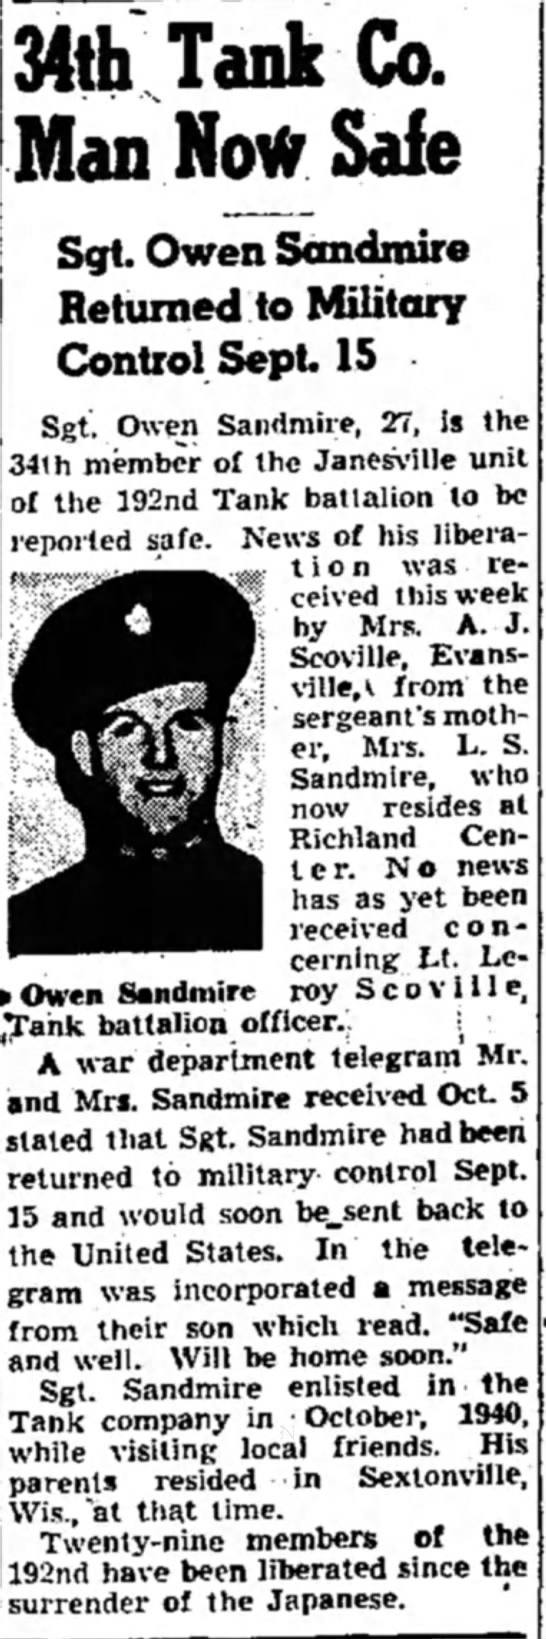 Sandmire1 - Owen Sandmire 34th Tank Co. Man Now Safe Sgt....